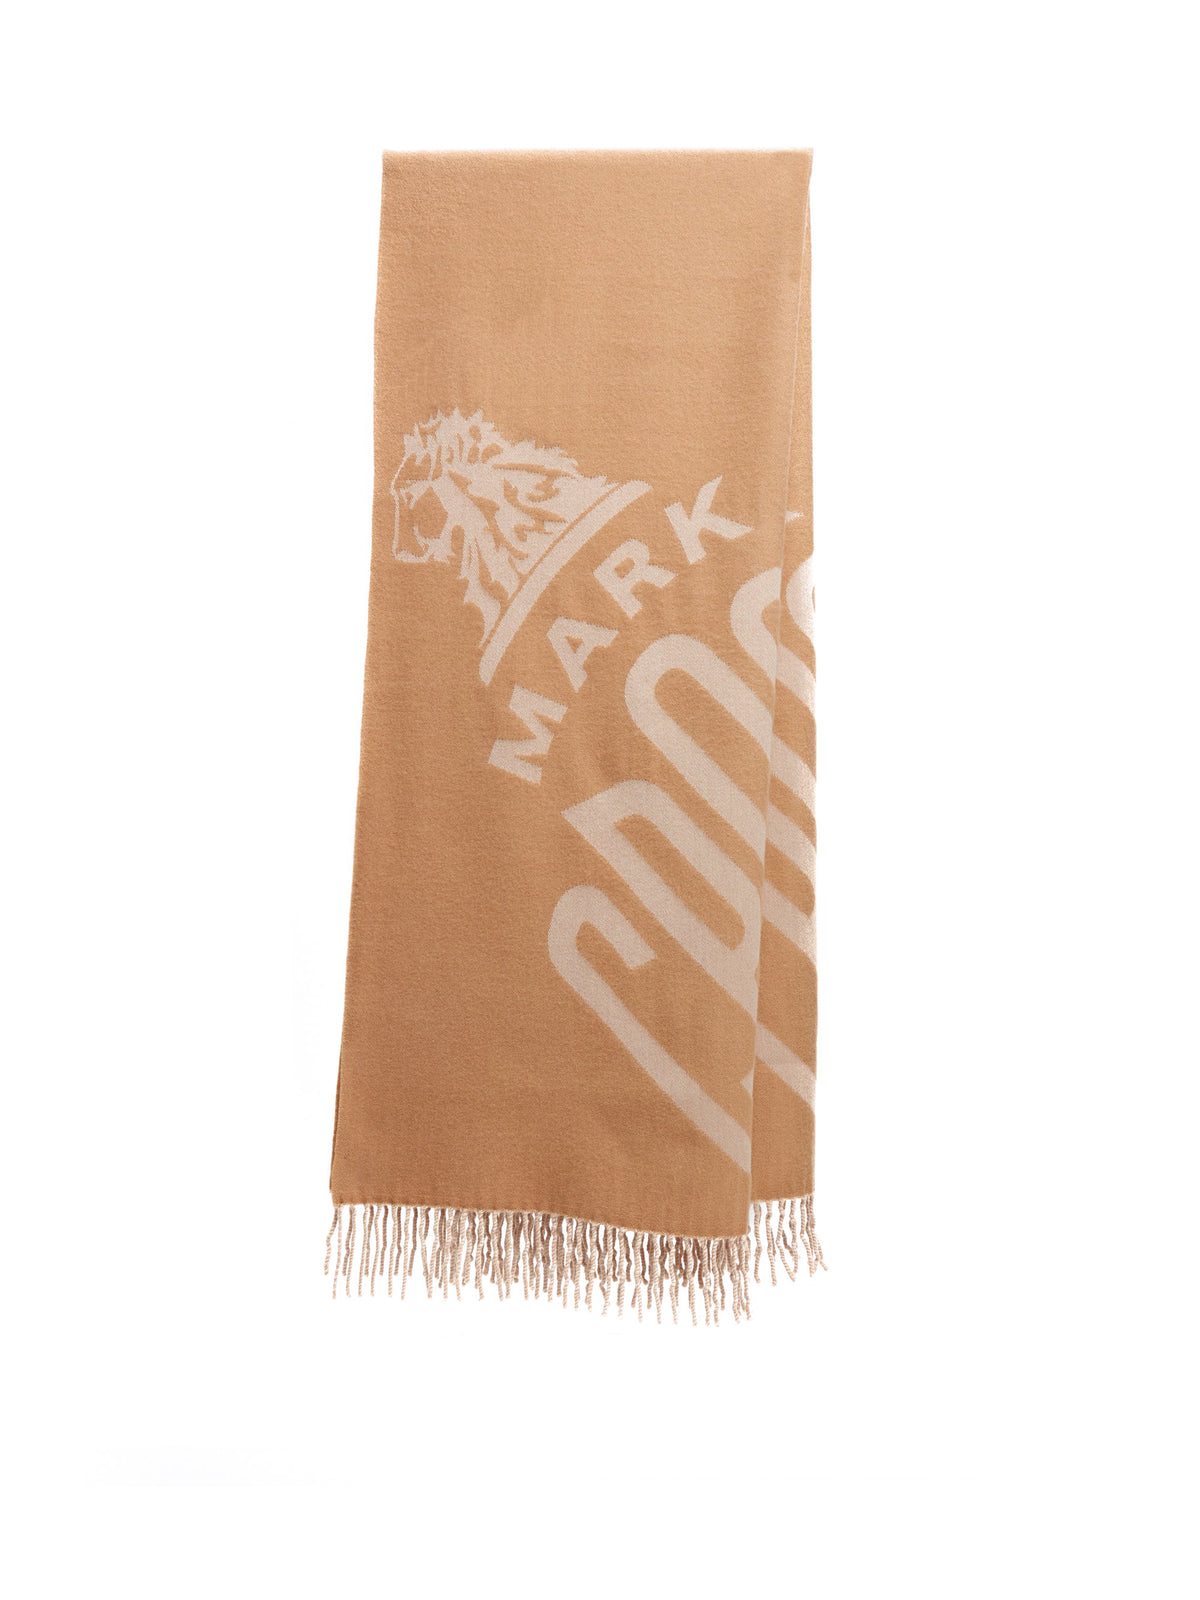 Mark Cross Hanover Wool Scarf Camel / Beige Front